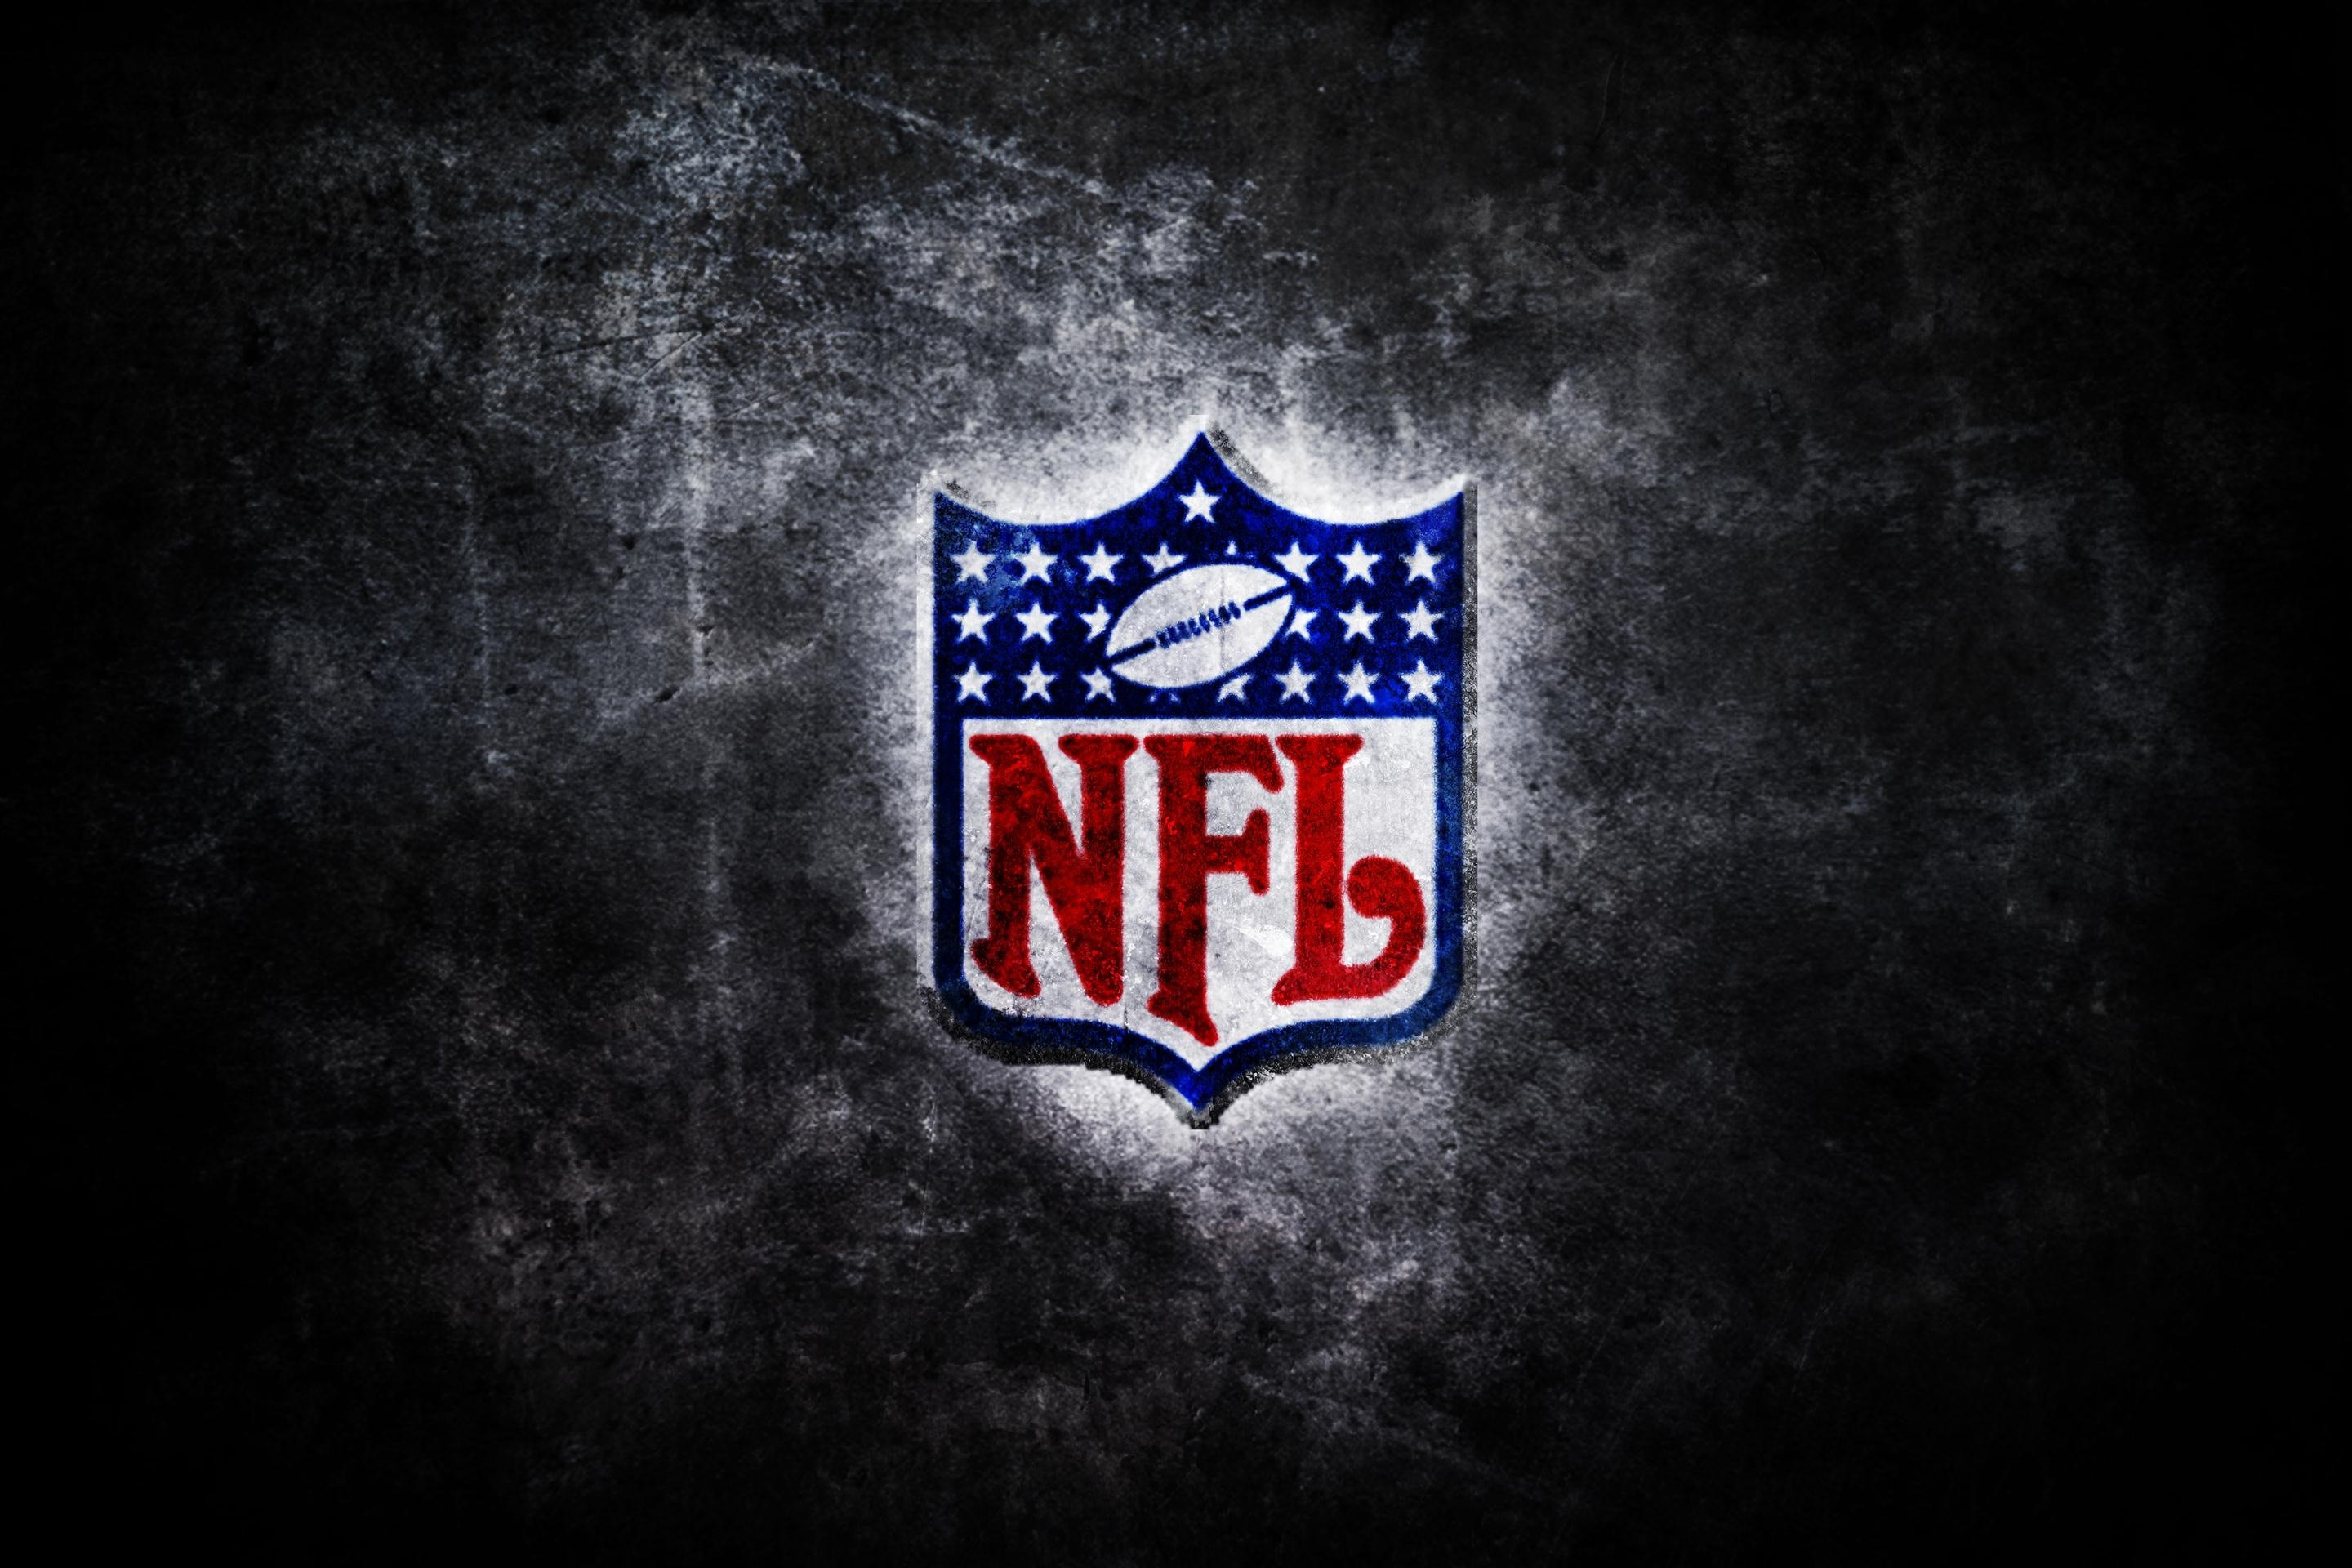 2880x1920 NFL logo wallpaper HD for desktop.